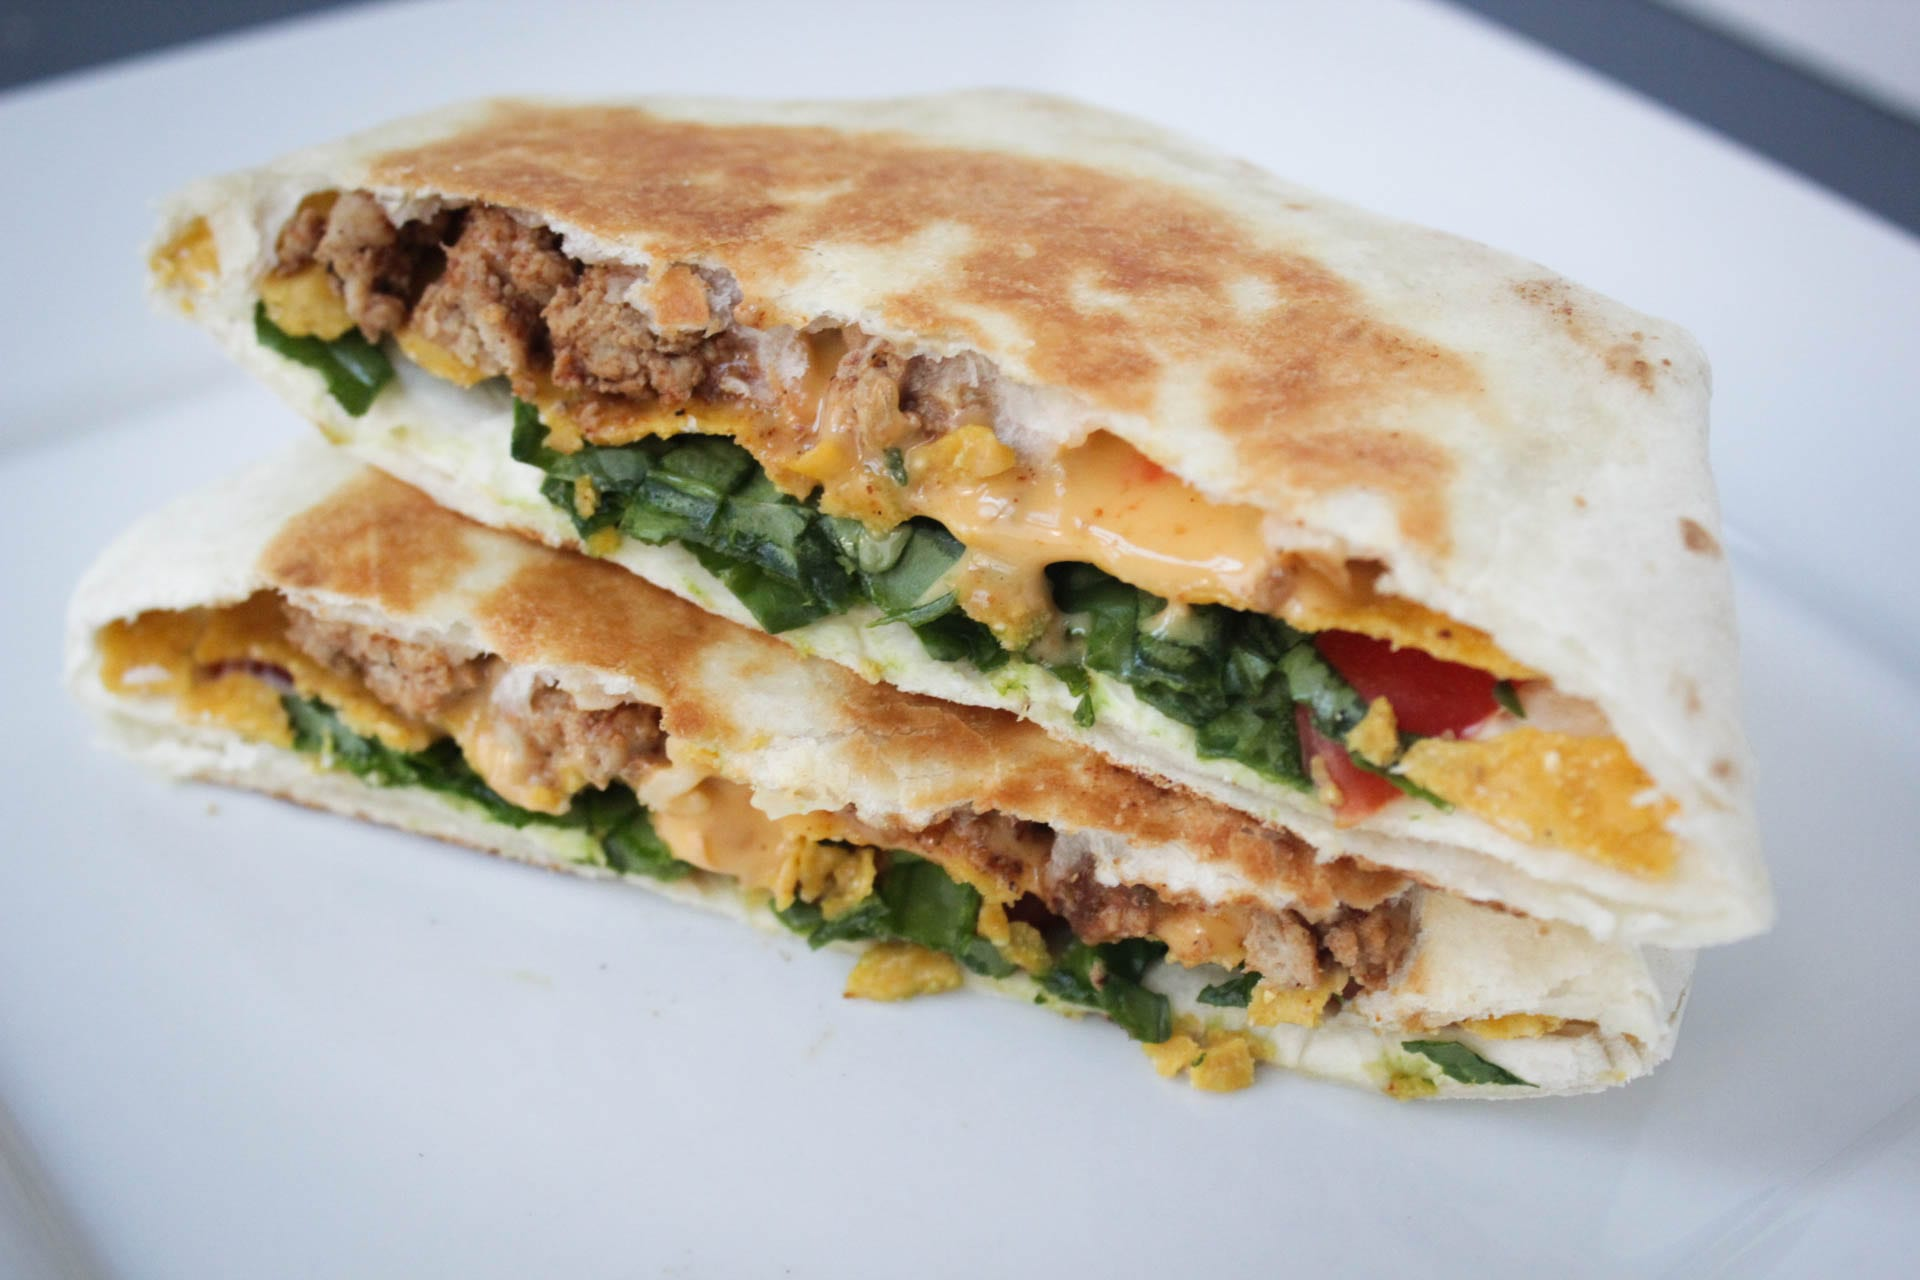 Copycat crunchwrap supreme recipe with 7 ingredients - tortilla shells, taco meat, sour cream, cheese sauce, tostadas, lettuce and tomatoes